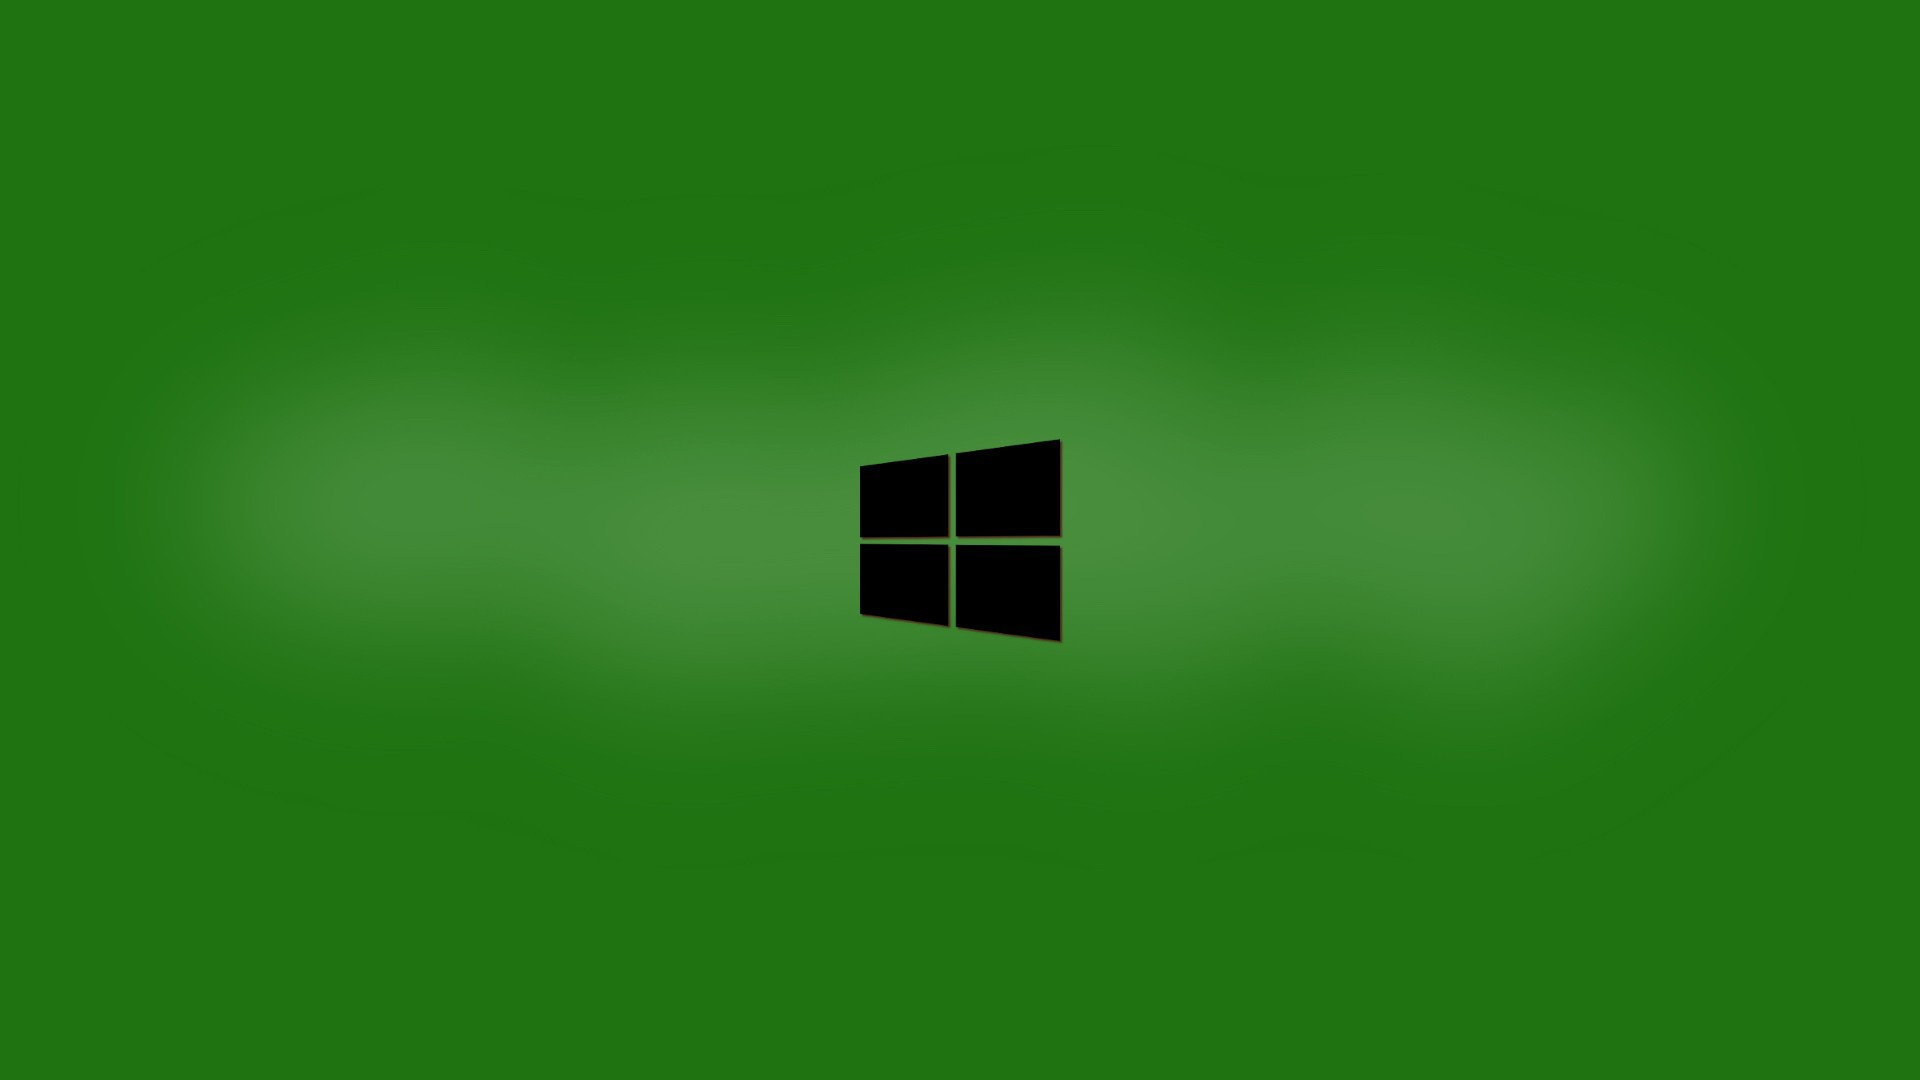 hd 1080p wallpapers for windows 8 - sf wallpaper